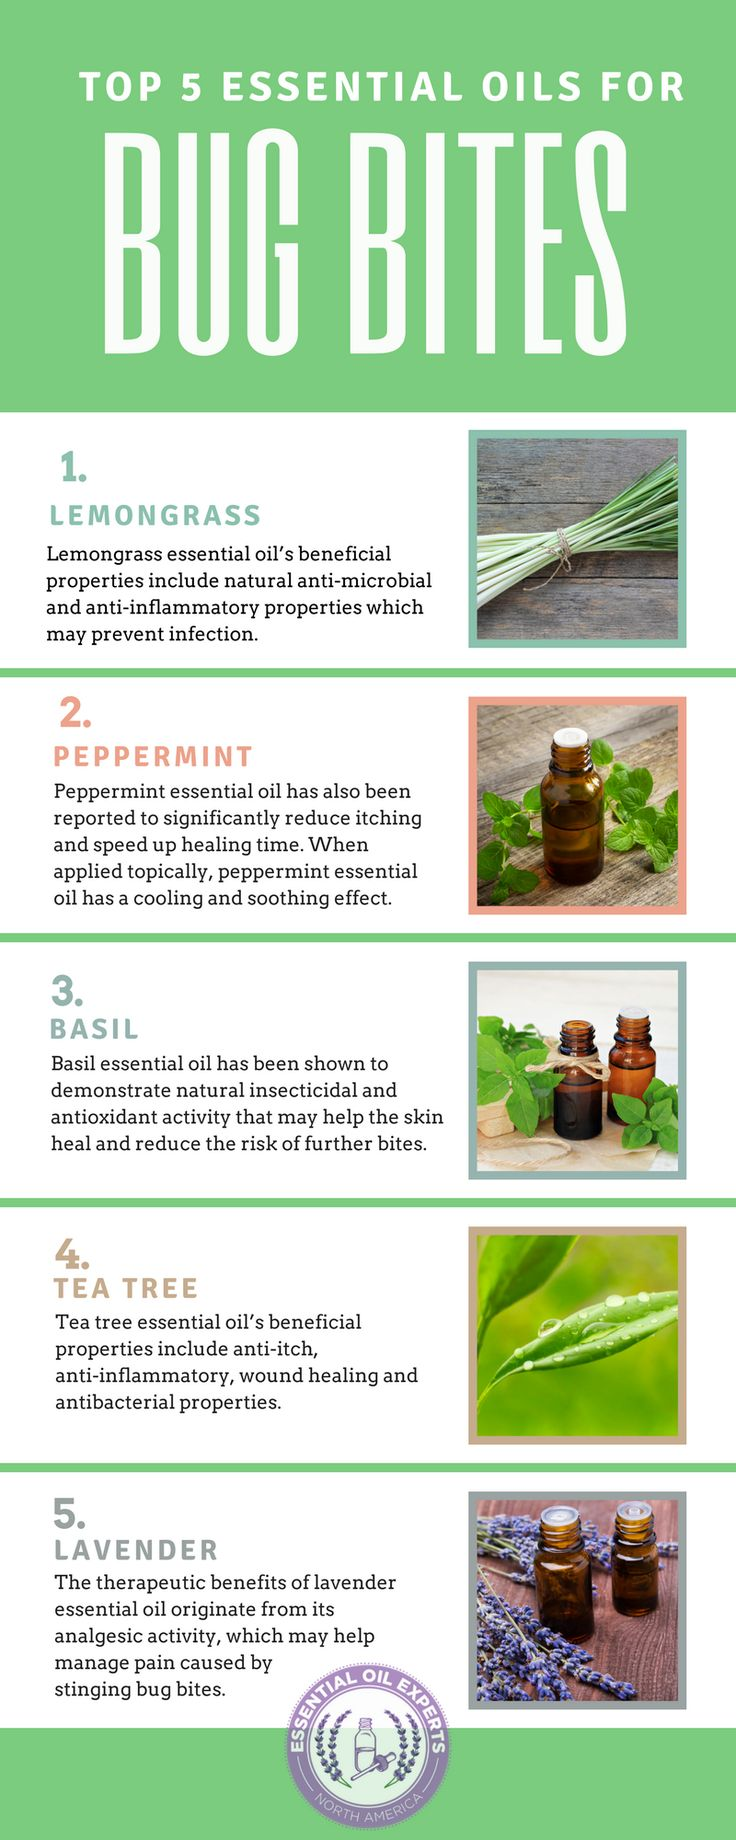 The Top 5 Essential Oils for Bug Bites: Insect, Mosquito, Spider, Tick, Ant & Bed Bug Bites